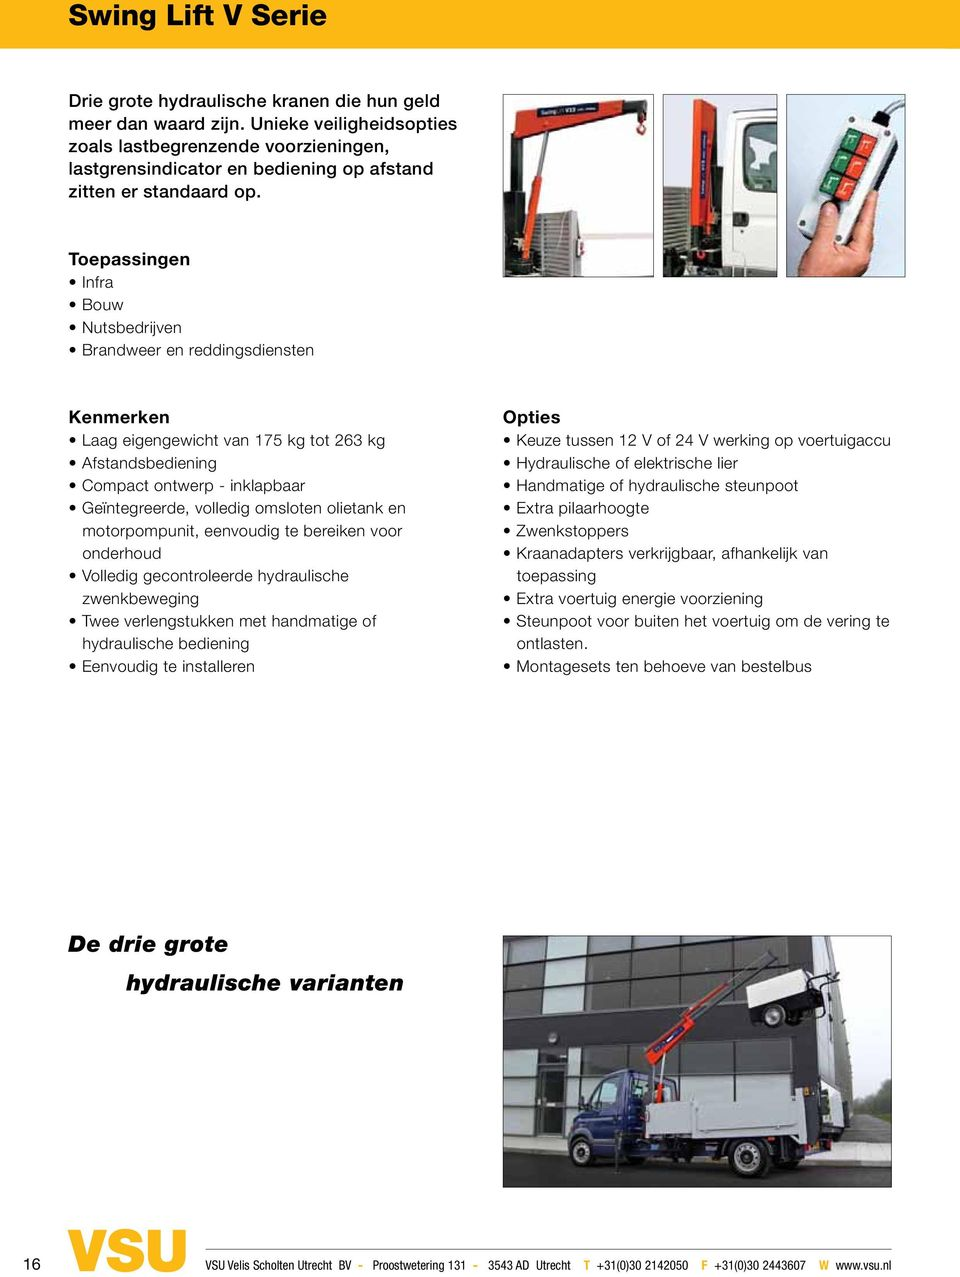 eatures Options Low crane weight of 175kg to 263kg Remote control Compact design folds down to king post, maximising floor space Integrated, fully enclosed oil tank and motor pump unit with easy